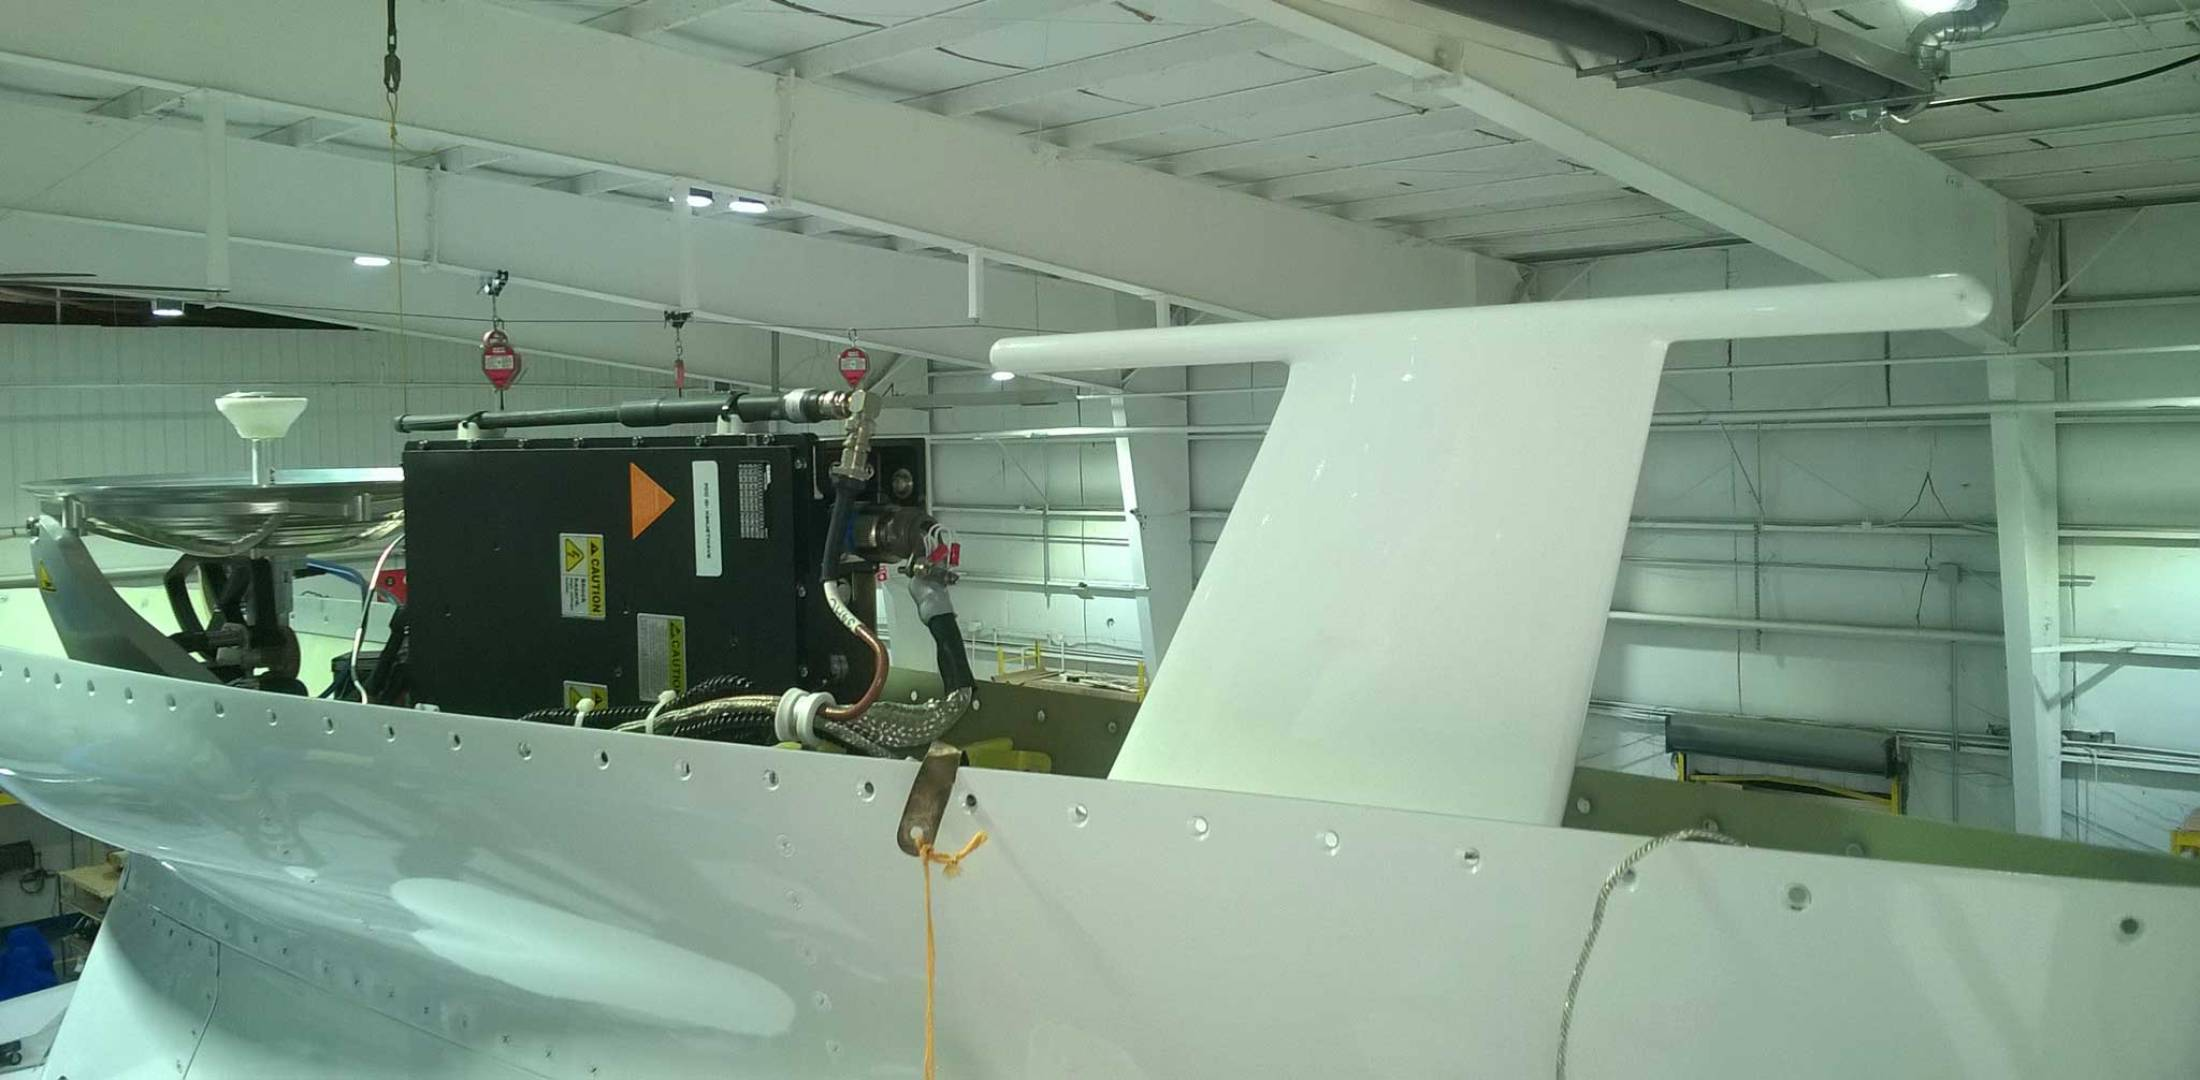 JetWave hardware in place on aircraft